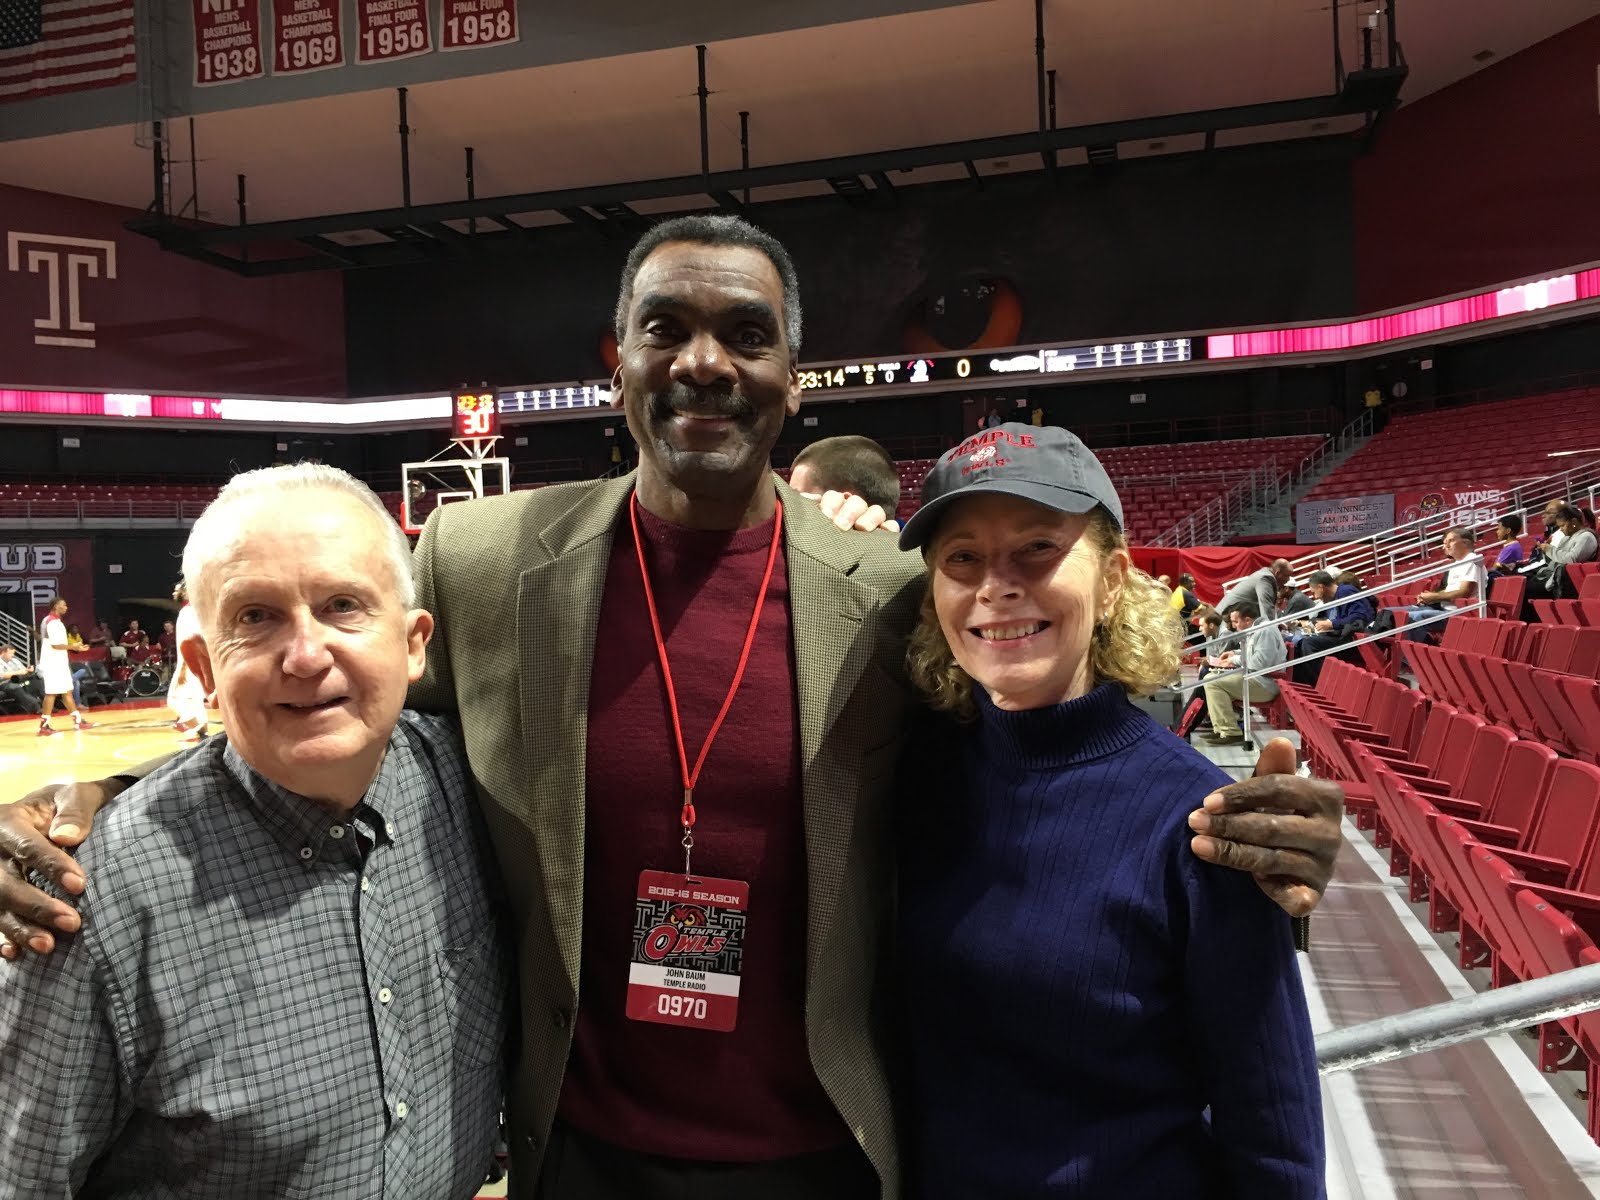 With their good friend, John  Baum, analyst for Owls bb and member of the Temple Hall of Fame.